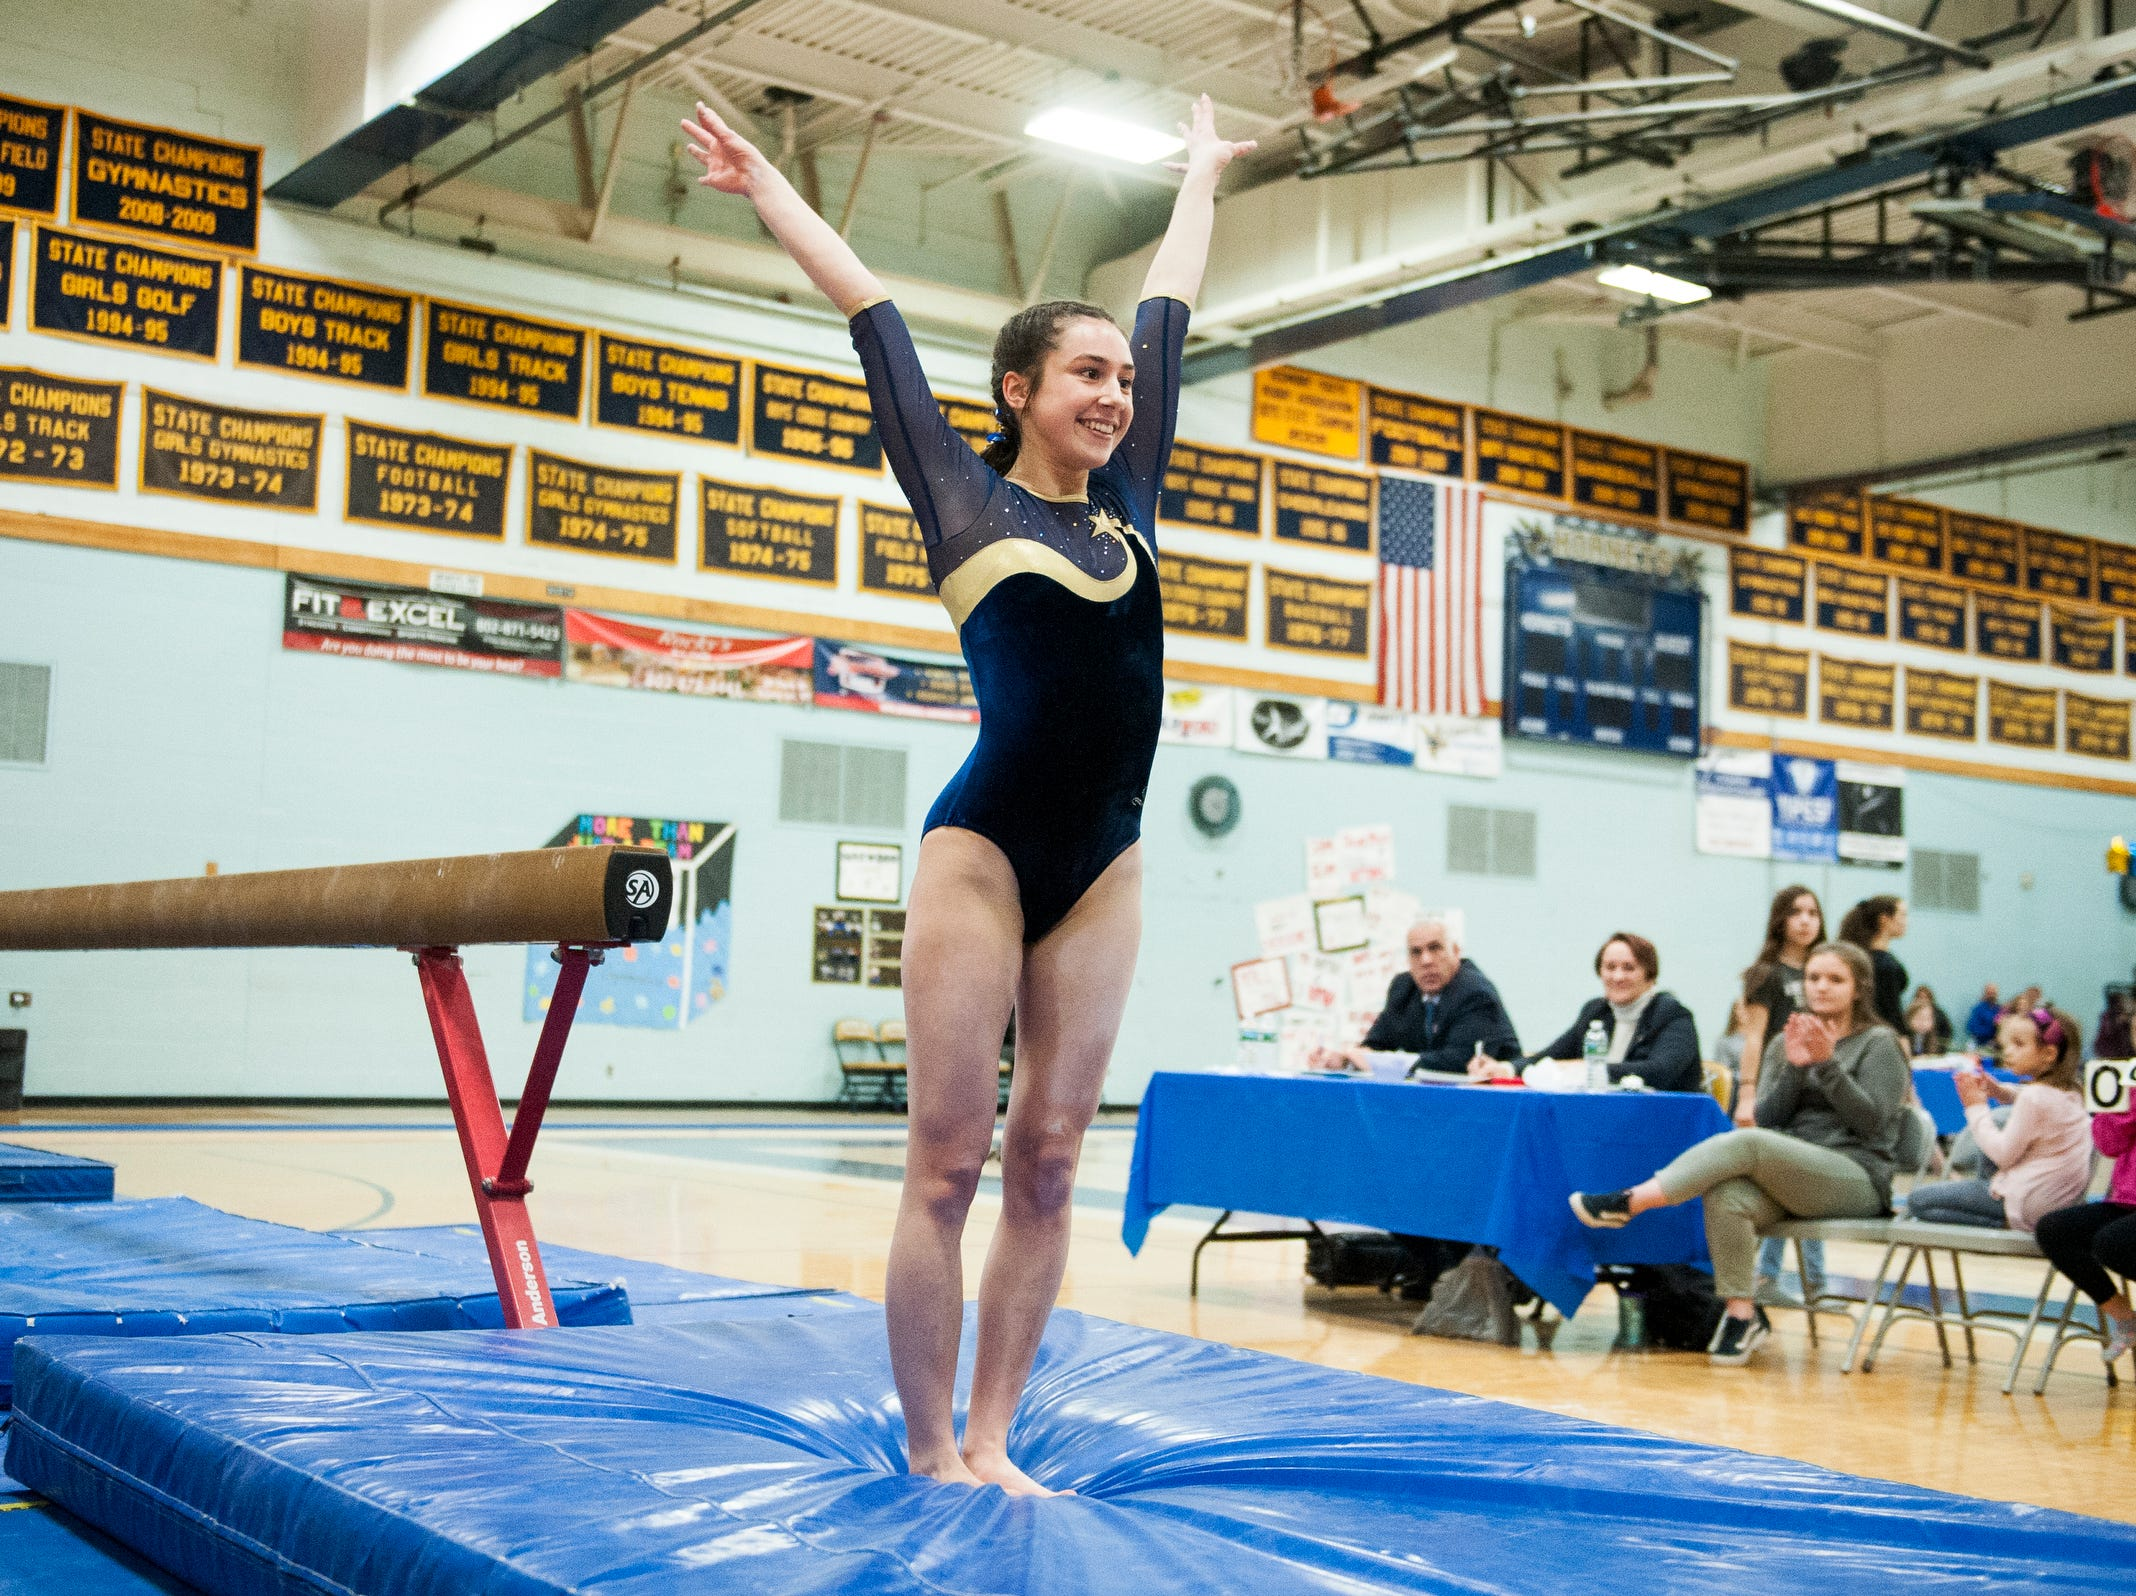 Essex's Ella Lesny lands her dismount on the bars routine during the 2019 high school gymnastics championship at Essex High School on Saturday afternoon February 16, 2019 in Essex, Vermont.